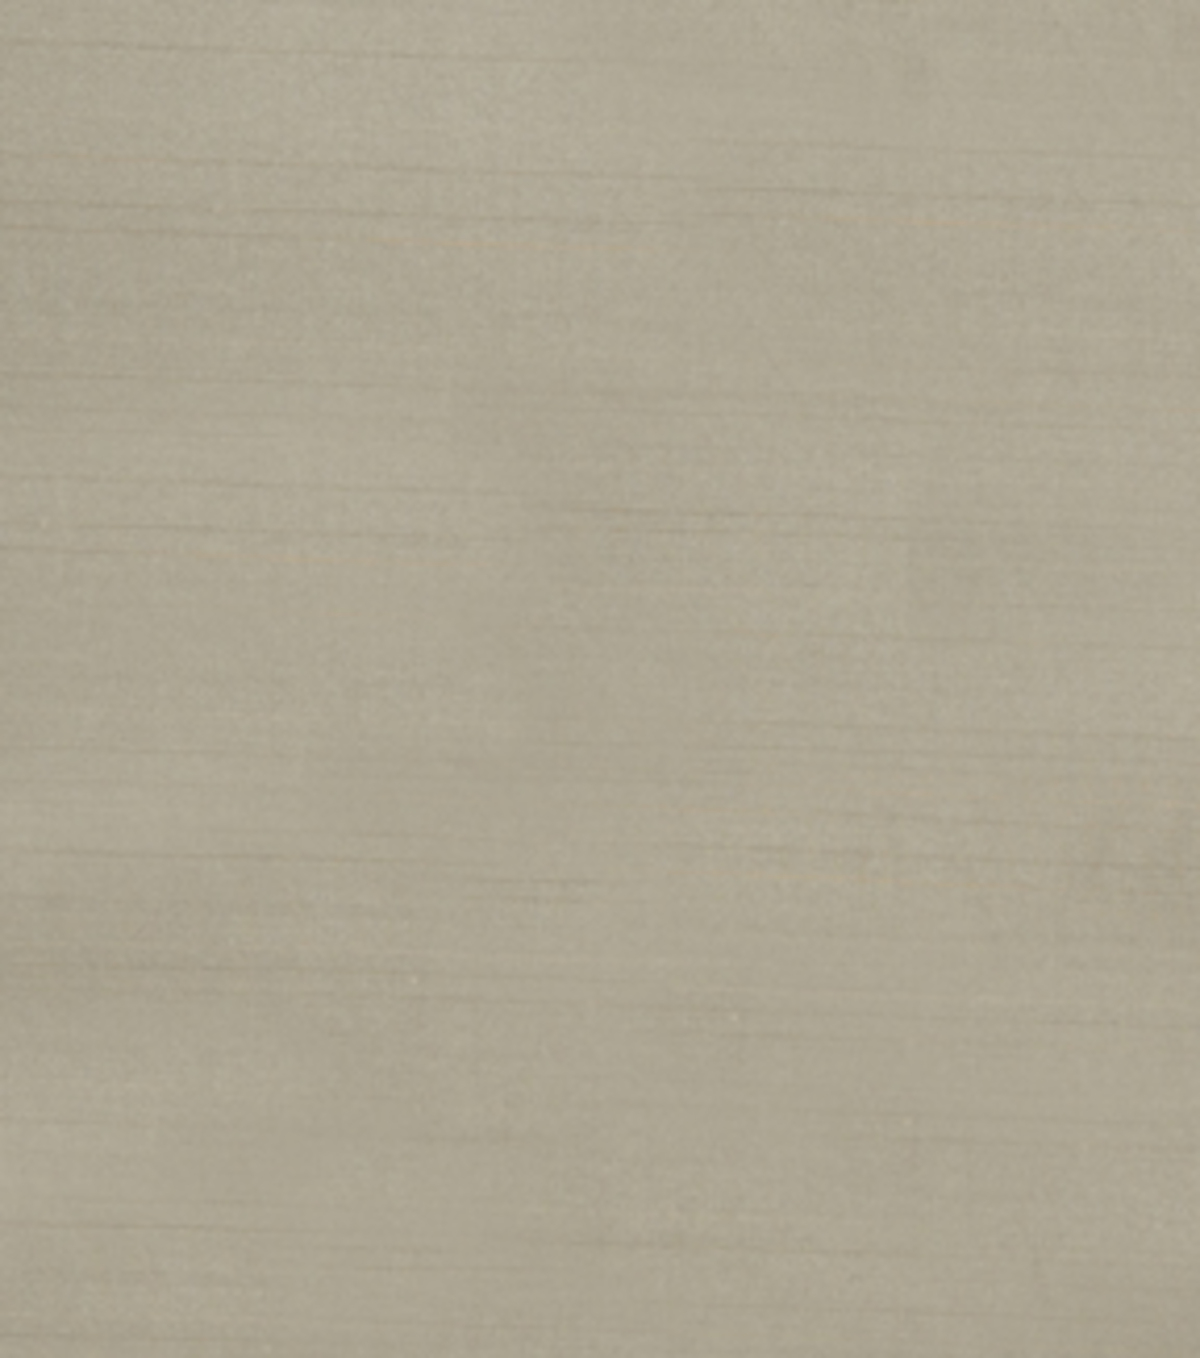 Home Decor 8\u0022x8\u0022 Fabric Swatch-Signature Series Bravo Oyster